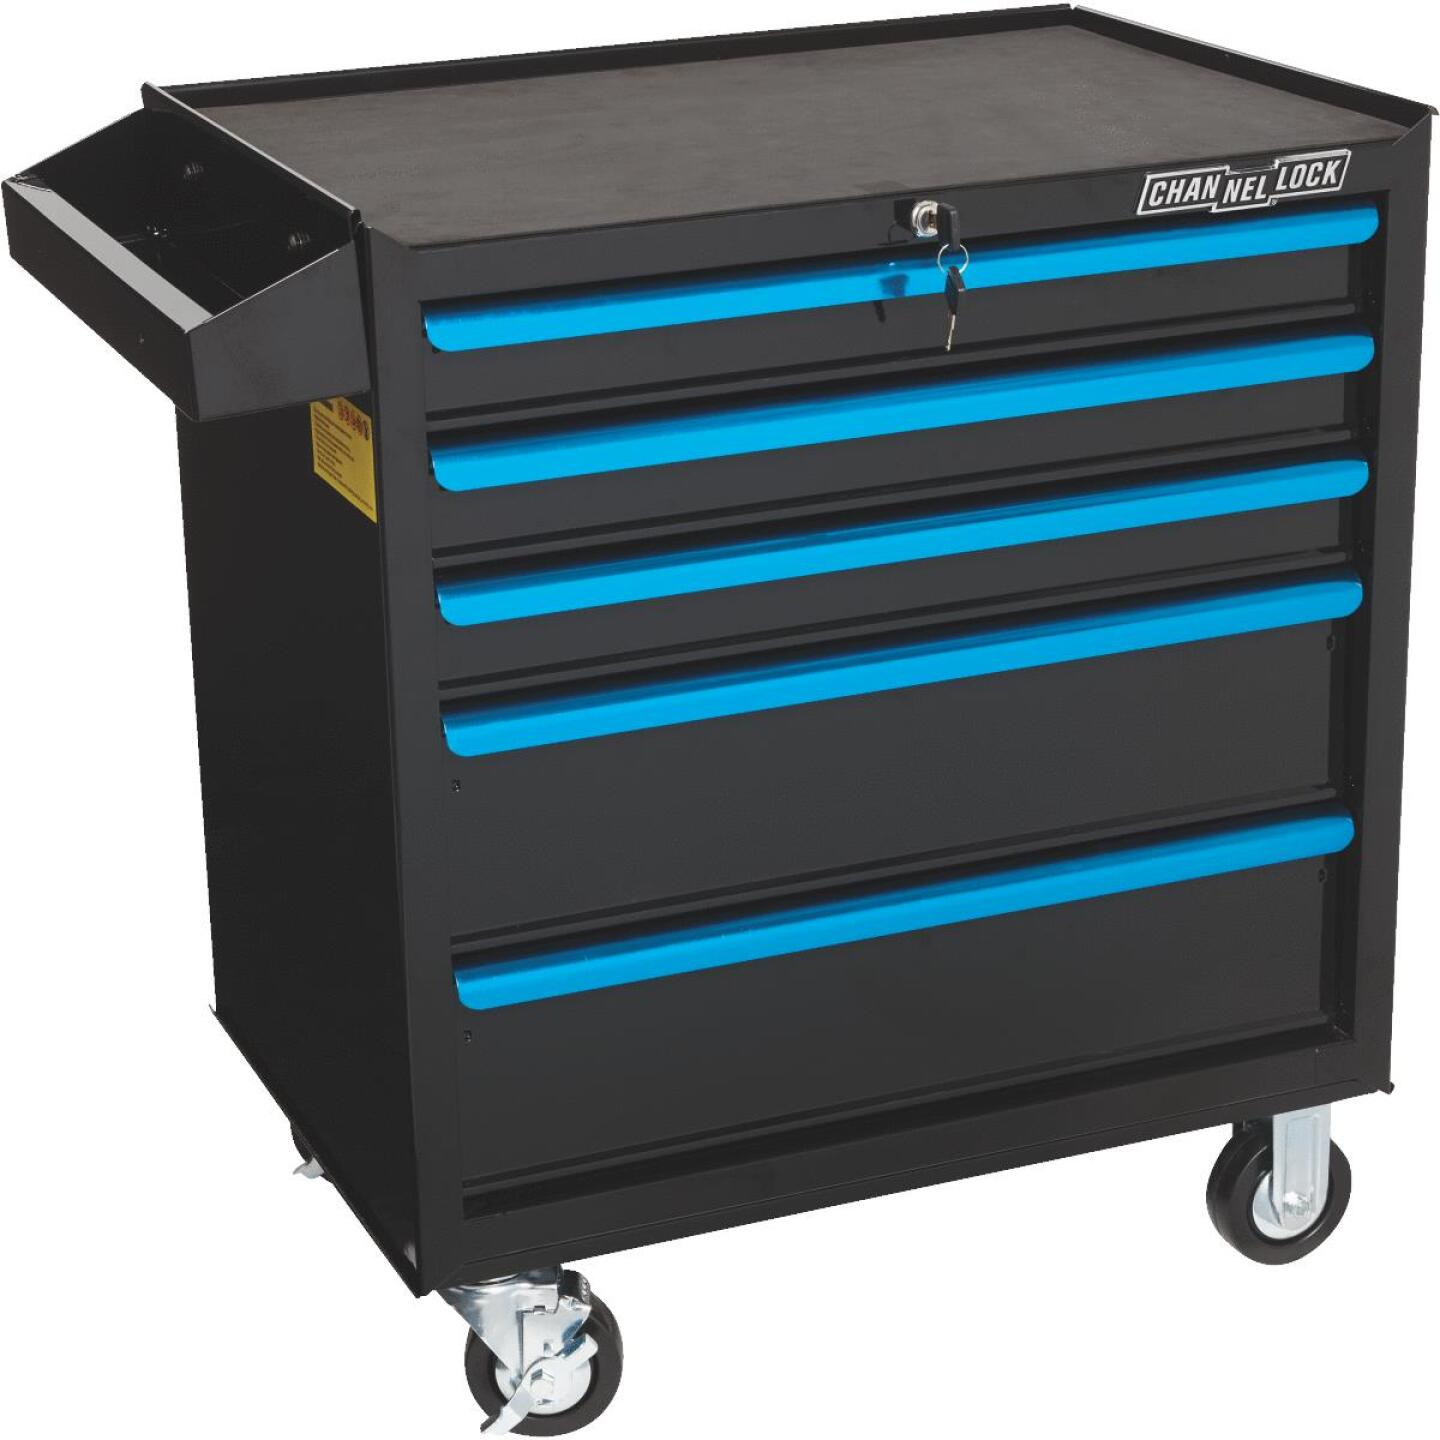 Channellock 26 In. 5-Drawer Tool Roller Cabinet Image 1